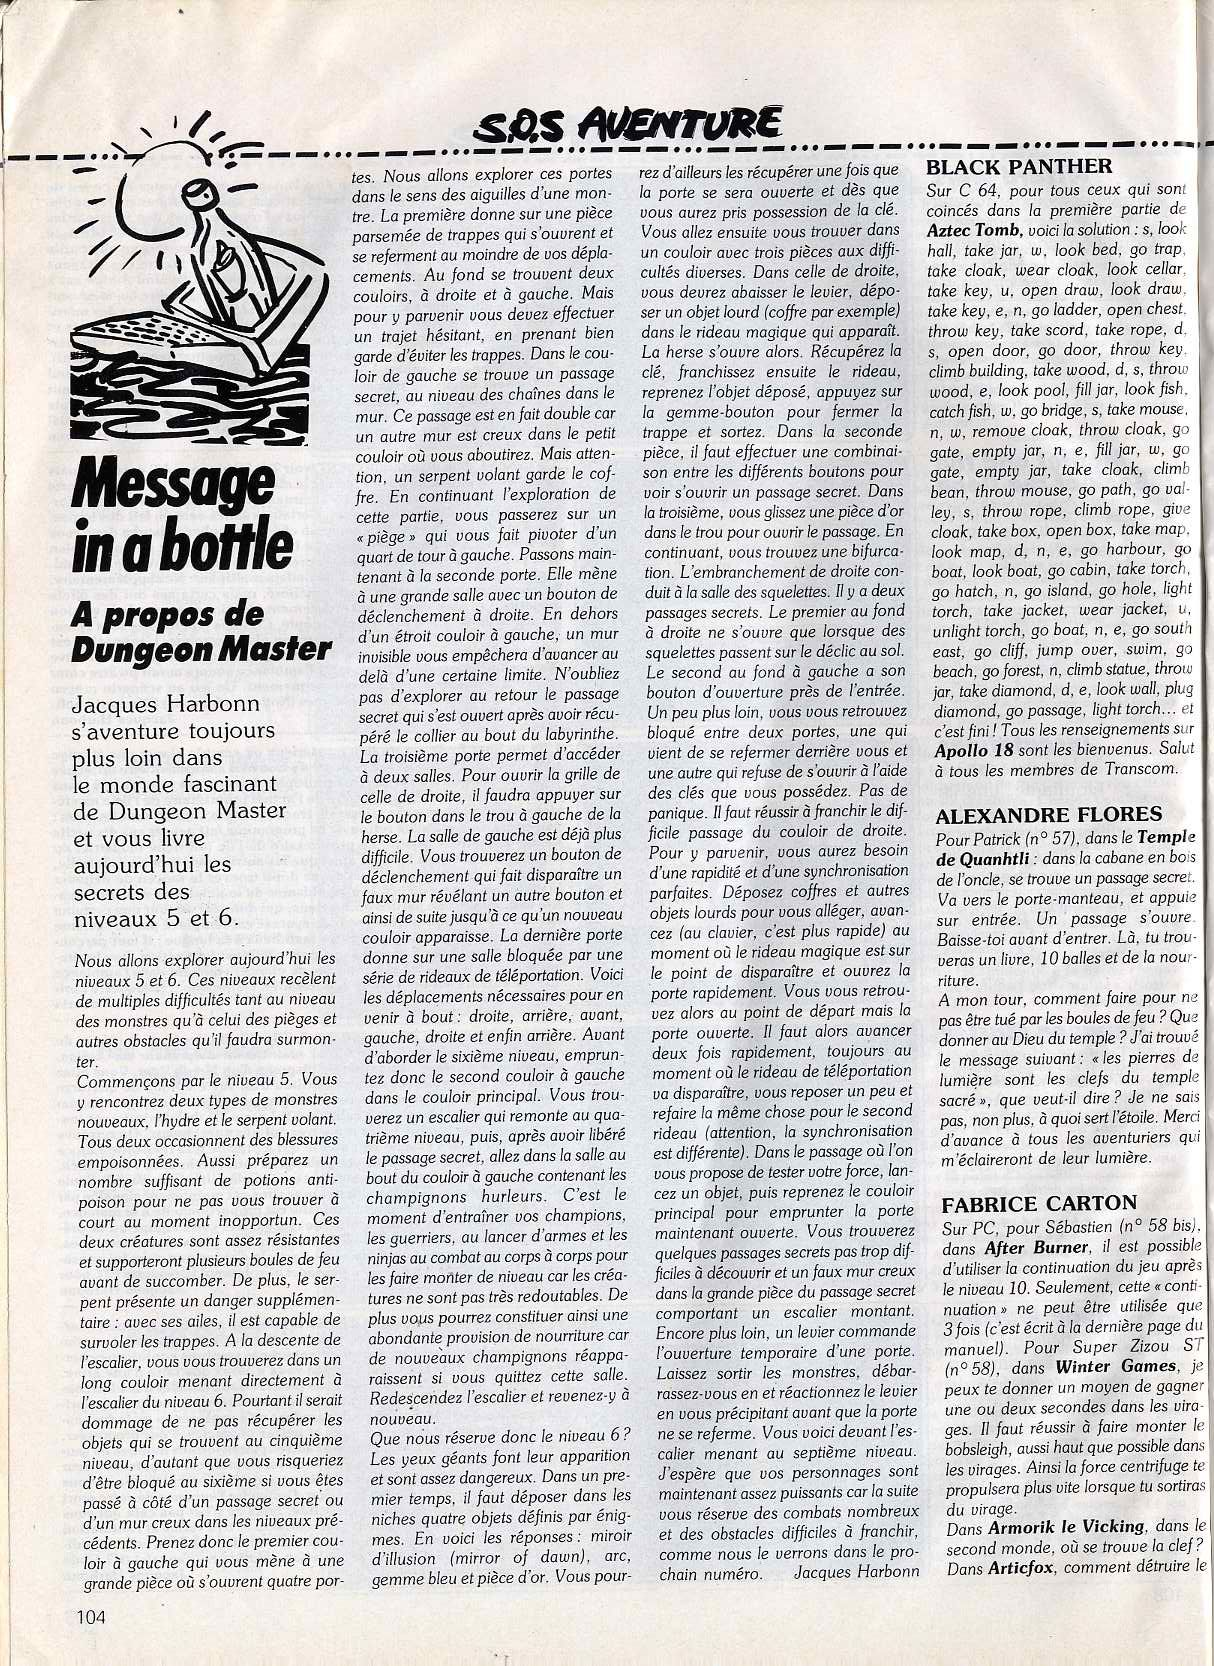 Dungeon Master Hints published in French magazine 'Tilt', Issue #63, February 1989, Page 104